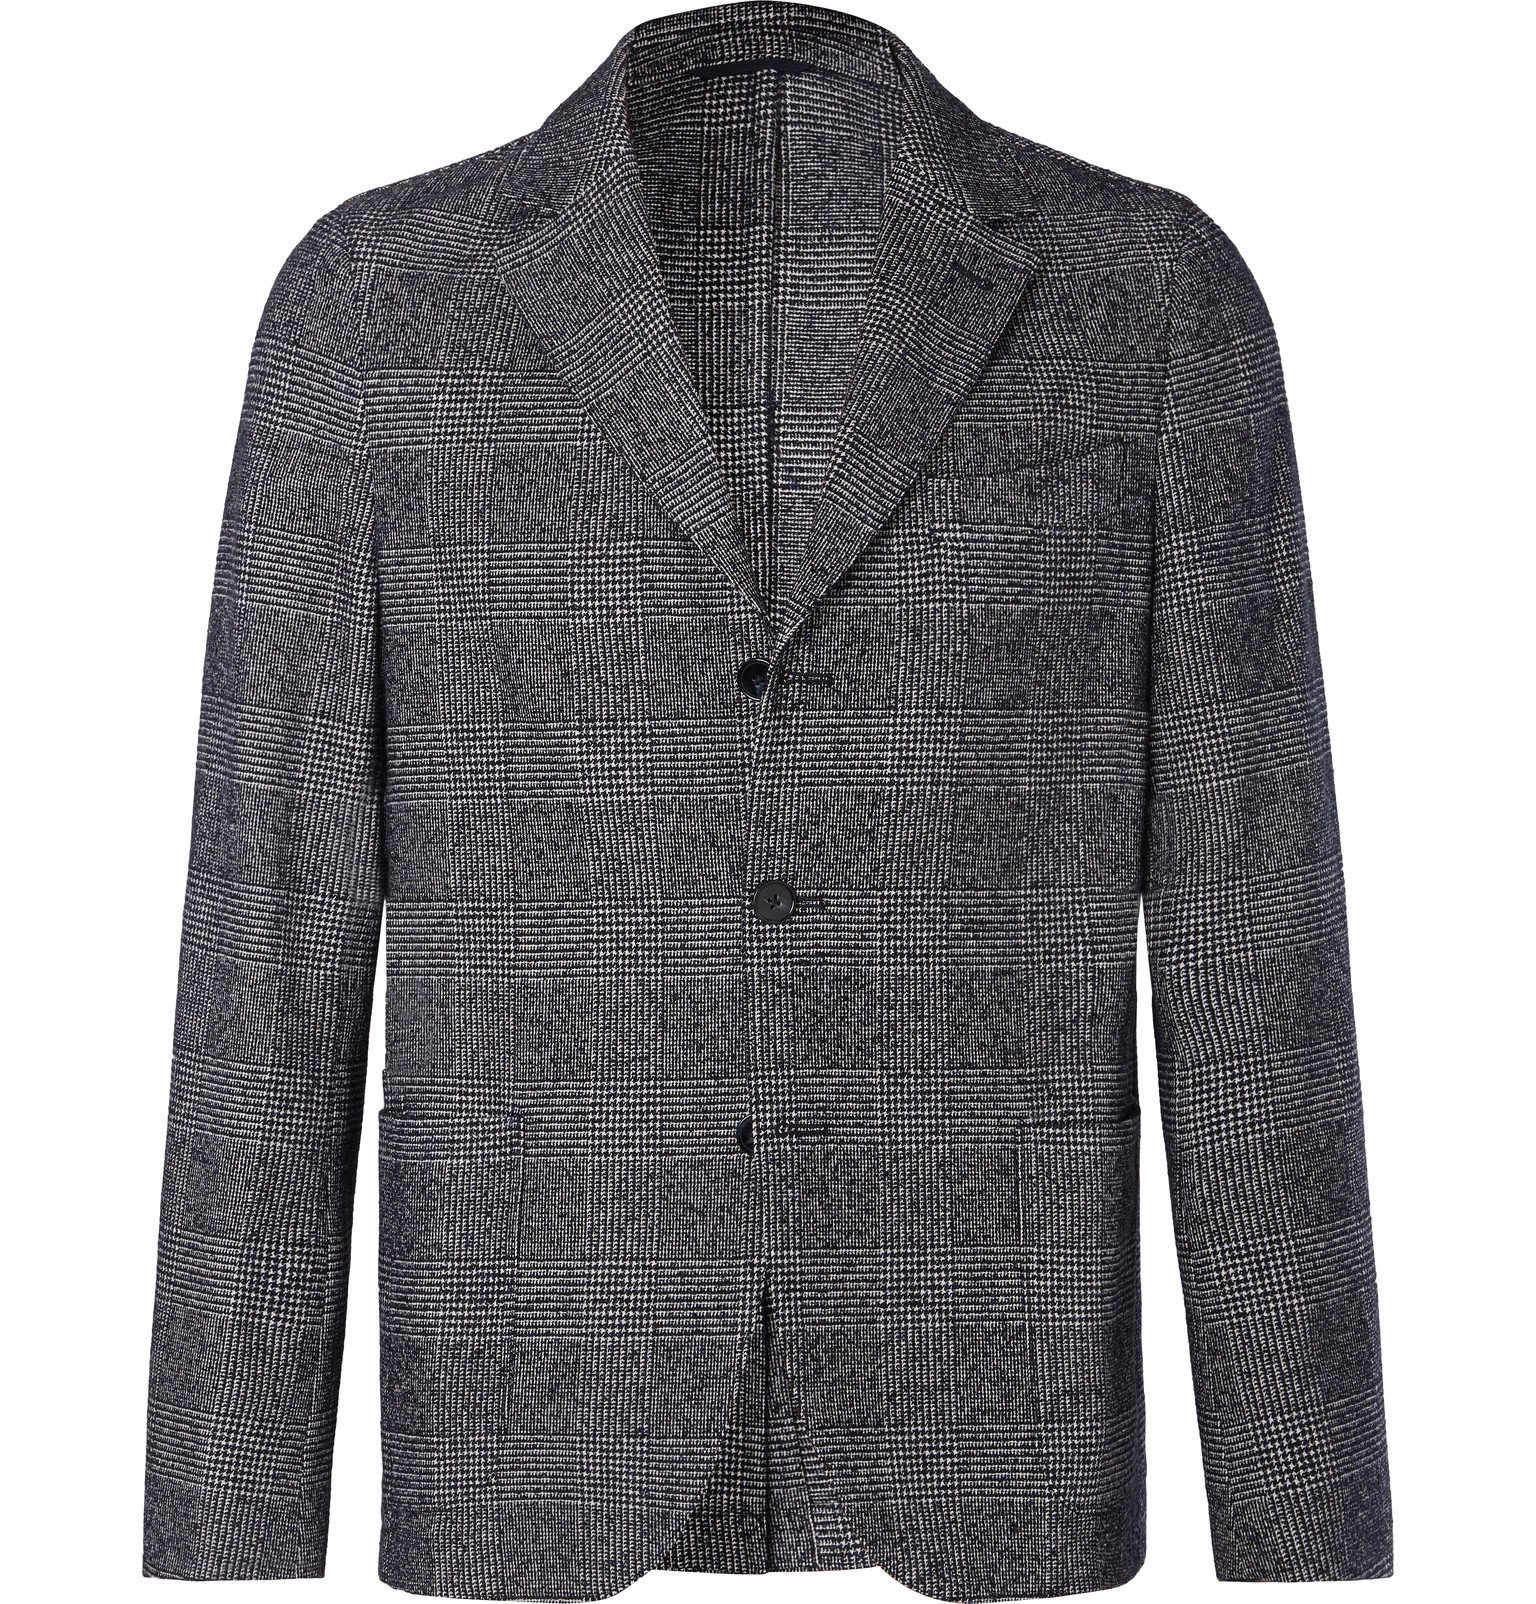 Officine Generale - Grey Arnie Prince of Wales Checked Cotton-Blend Blazer - Gray